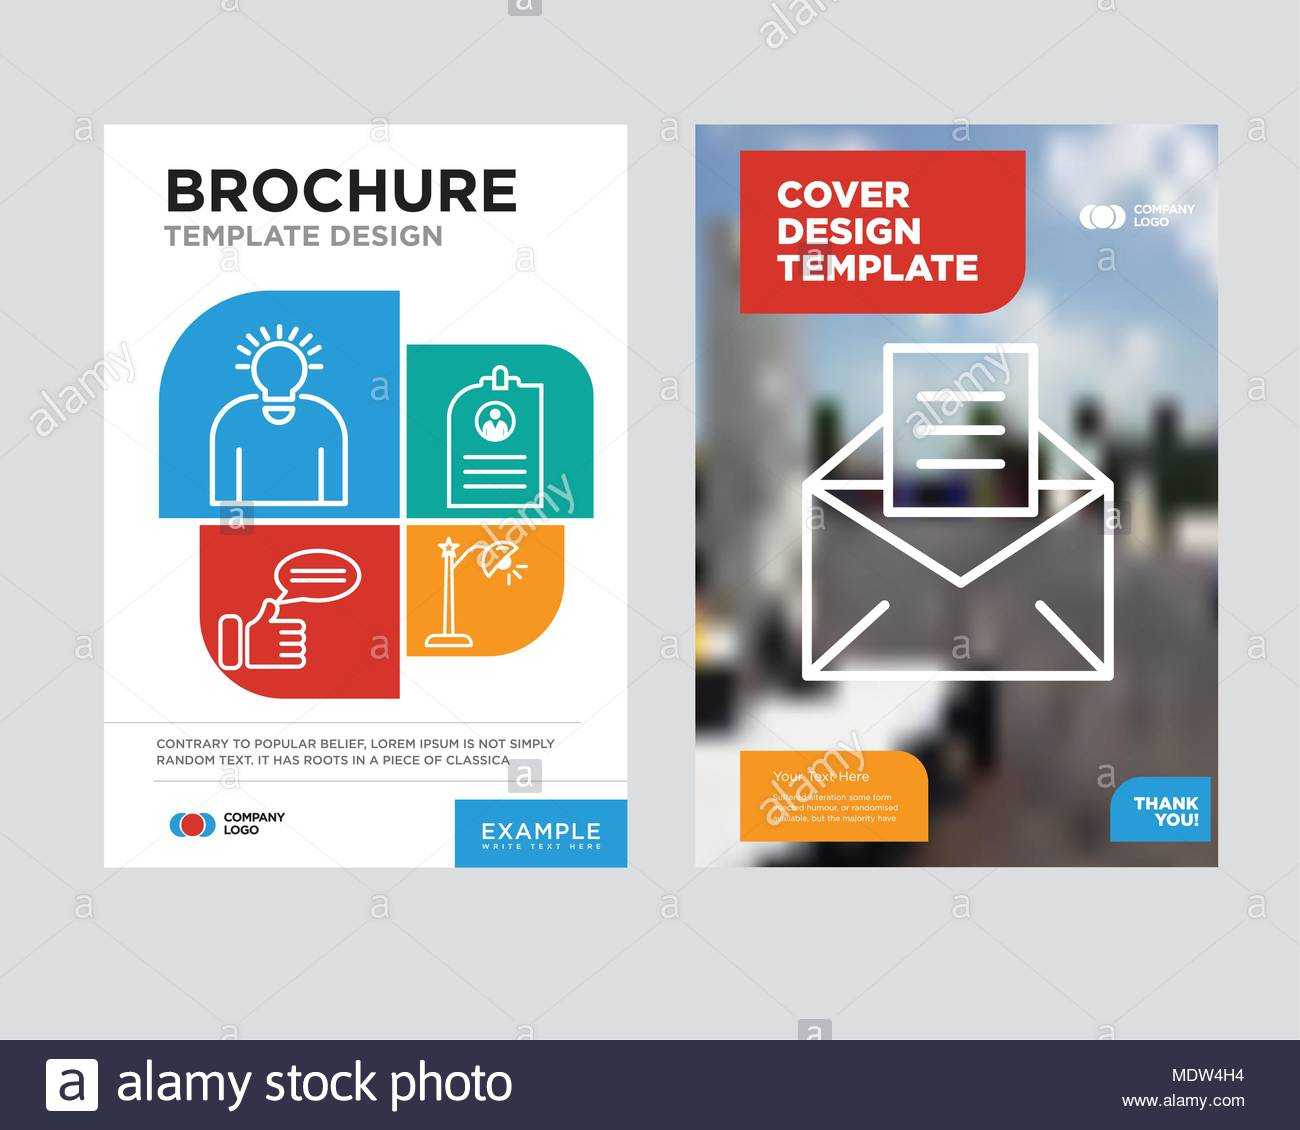 Email Brochure Flyer Design Template With Abstract Photo Within Email Flyer Template